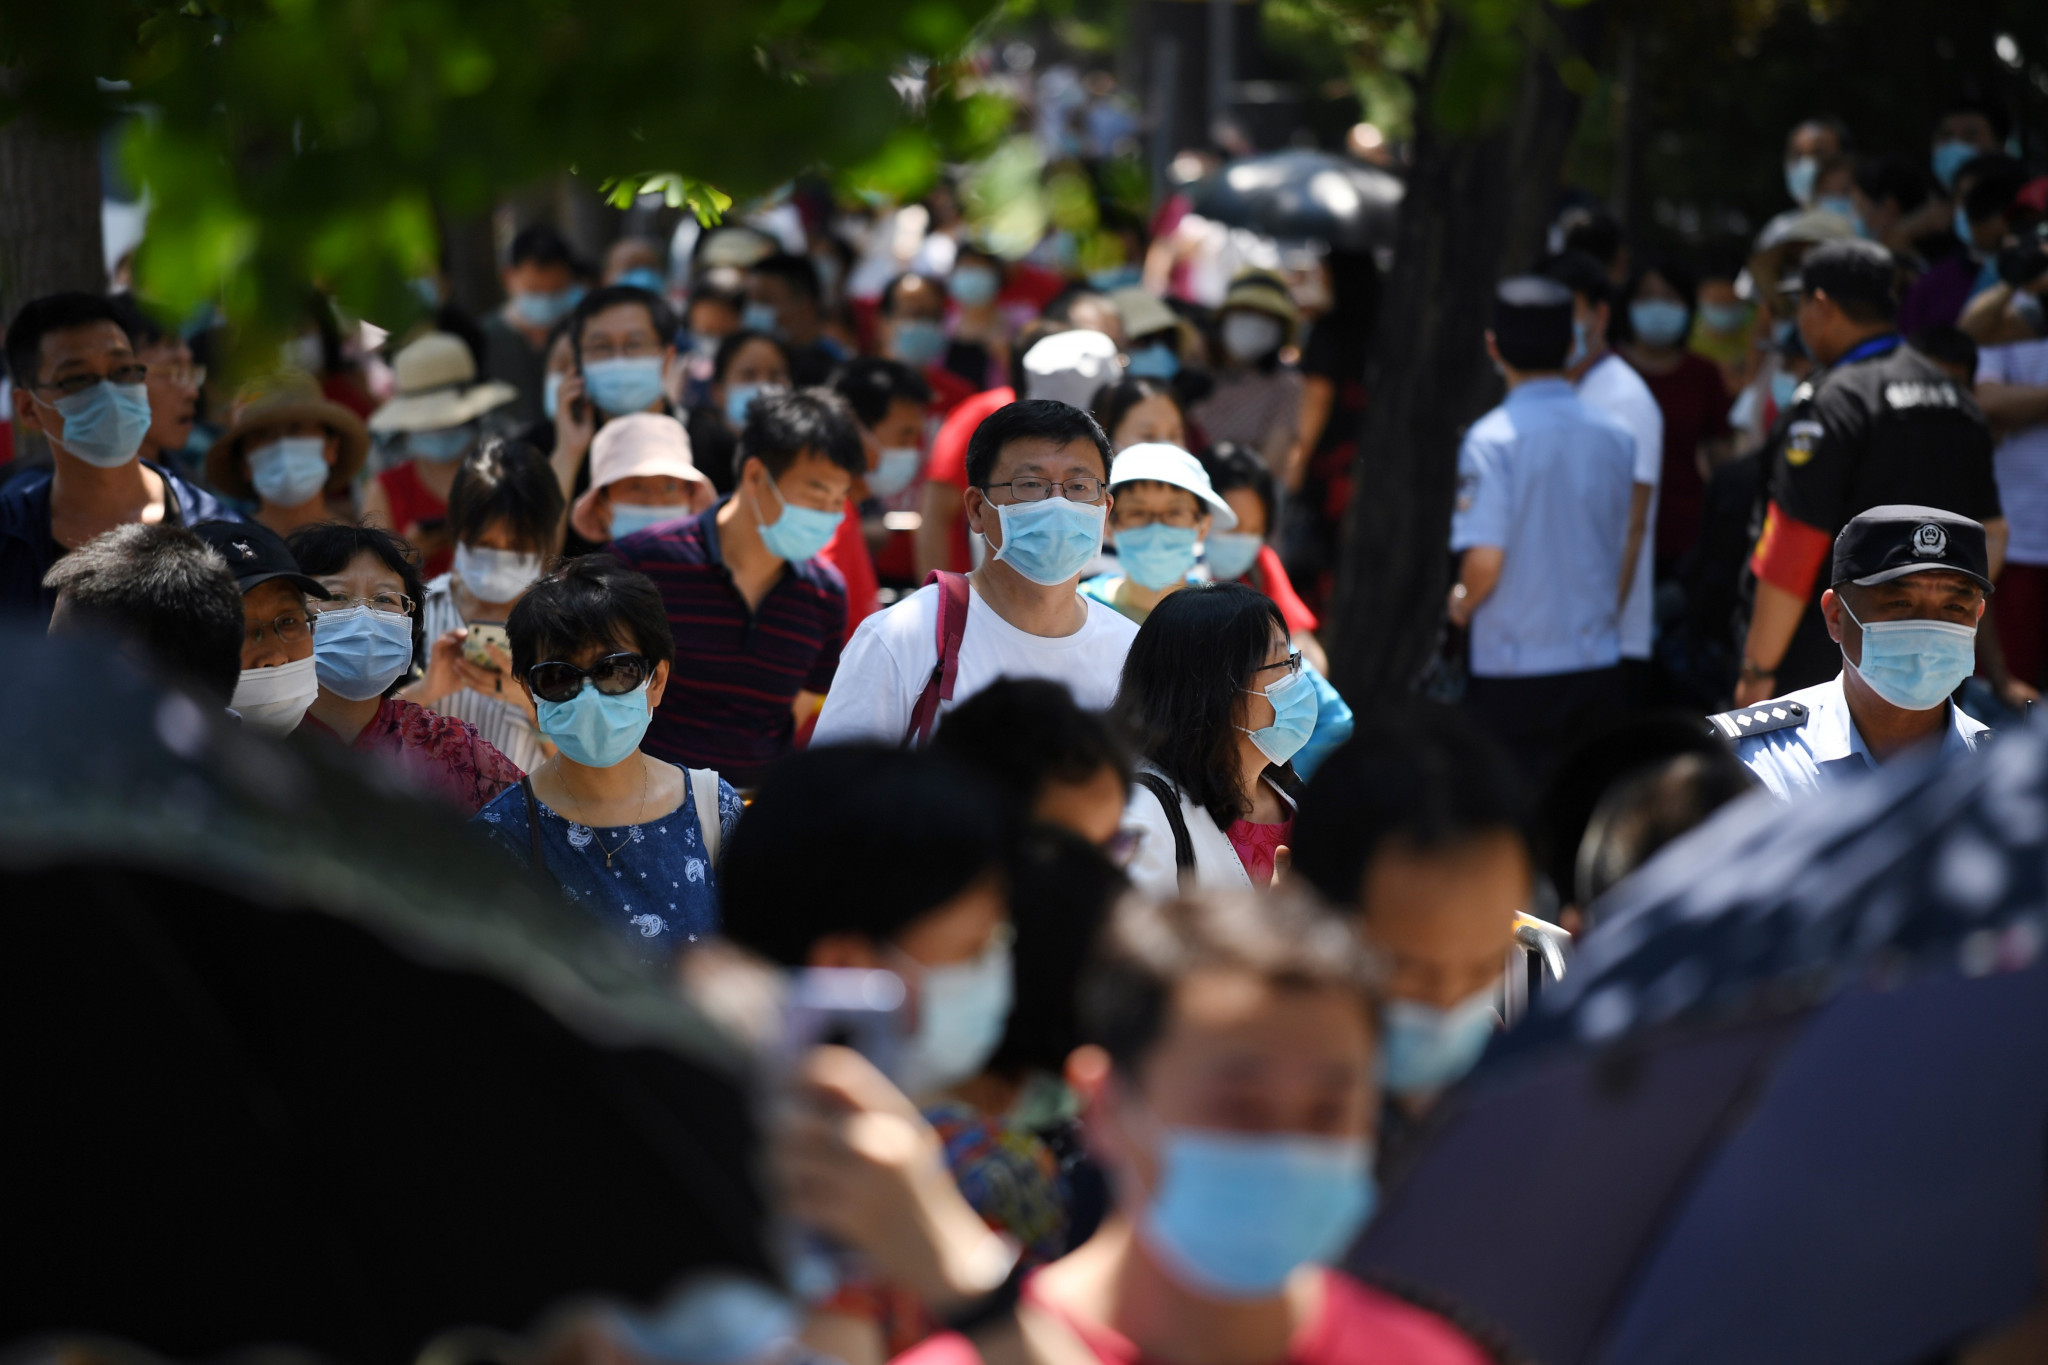 China claims to have had a relatively small number of coronavirus cases compared to the rest of the world but is cautious about international events contributing to an increase in numbers ©Getty Images